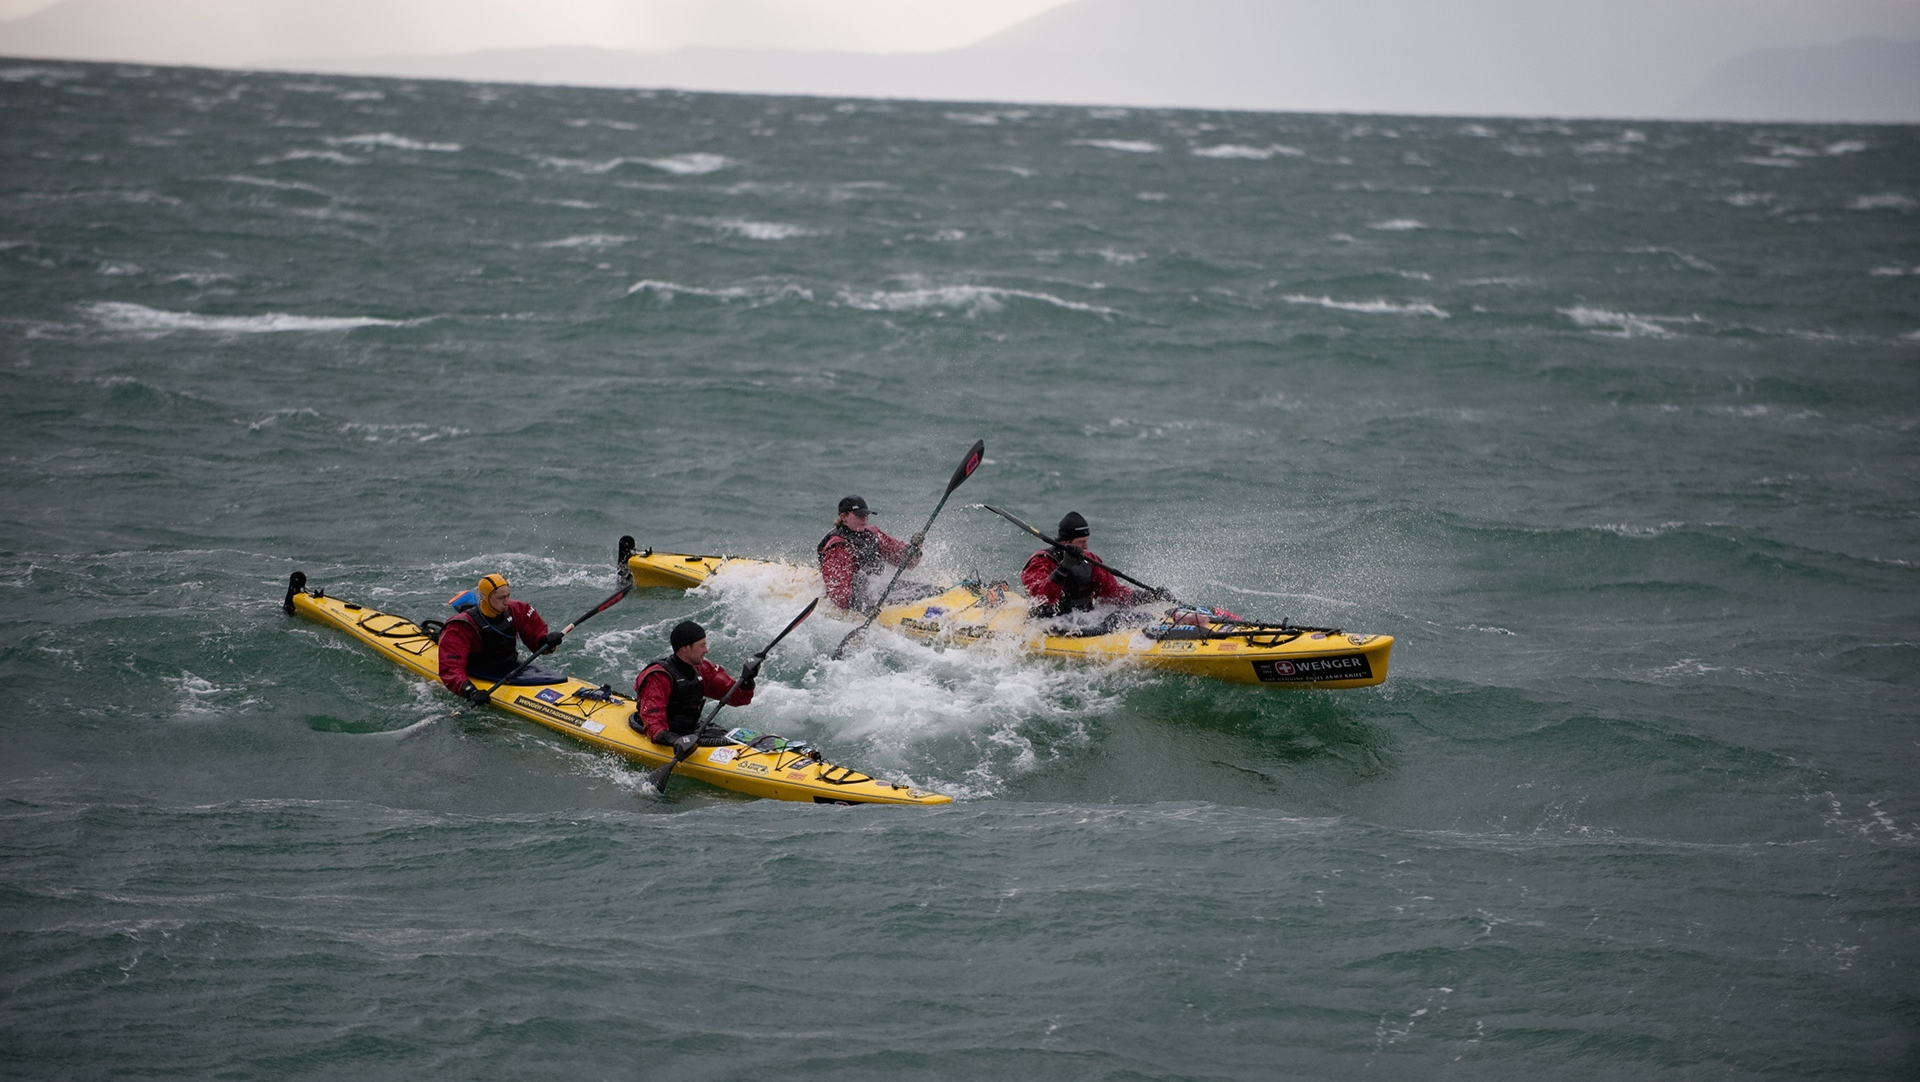 Patagonian Expedition Race, Patagonia, Chile, Team Kayak Expedition Stage